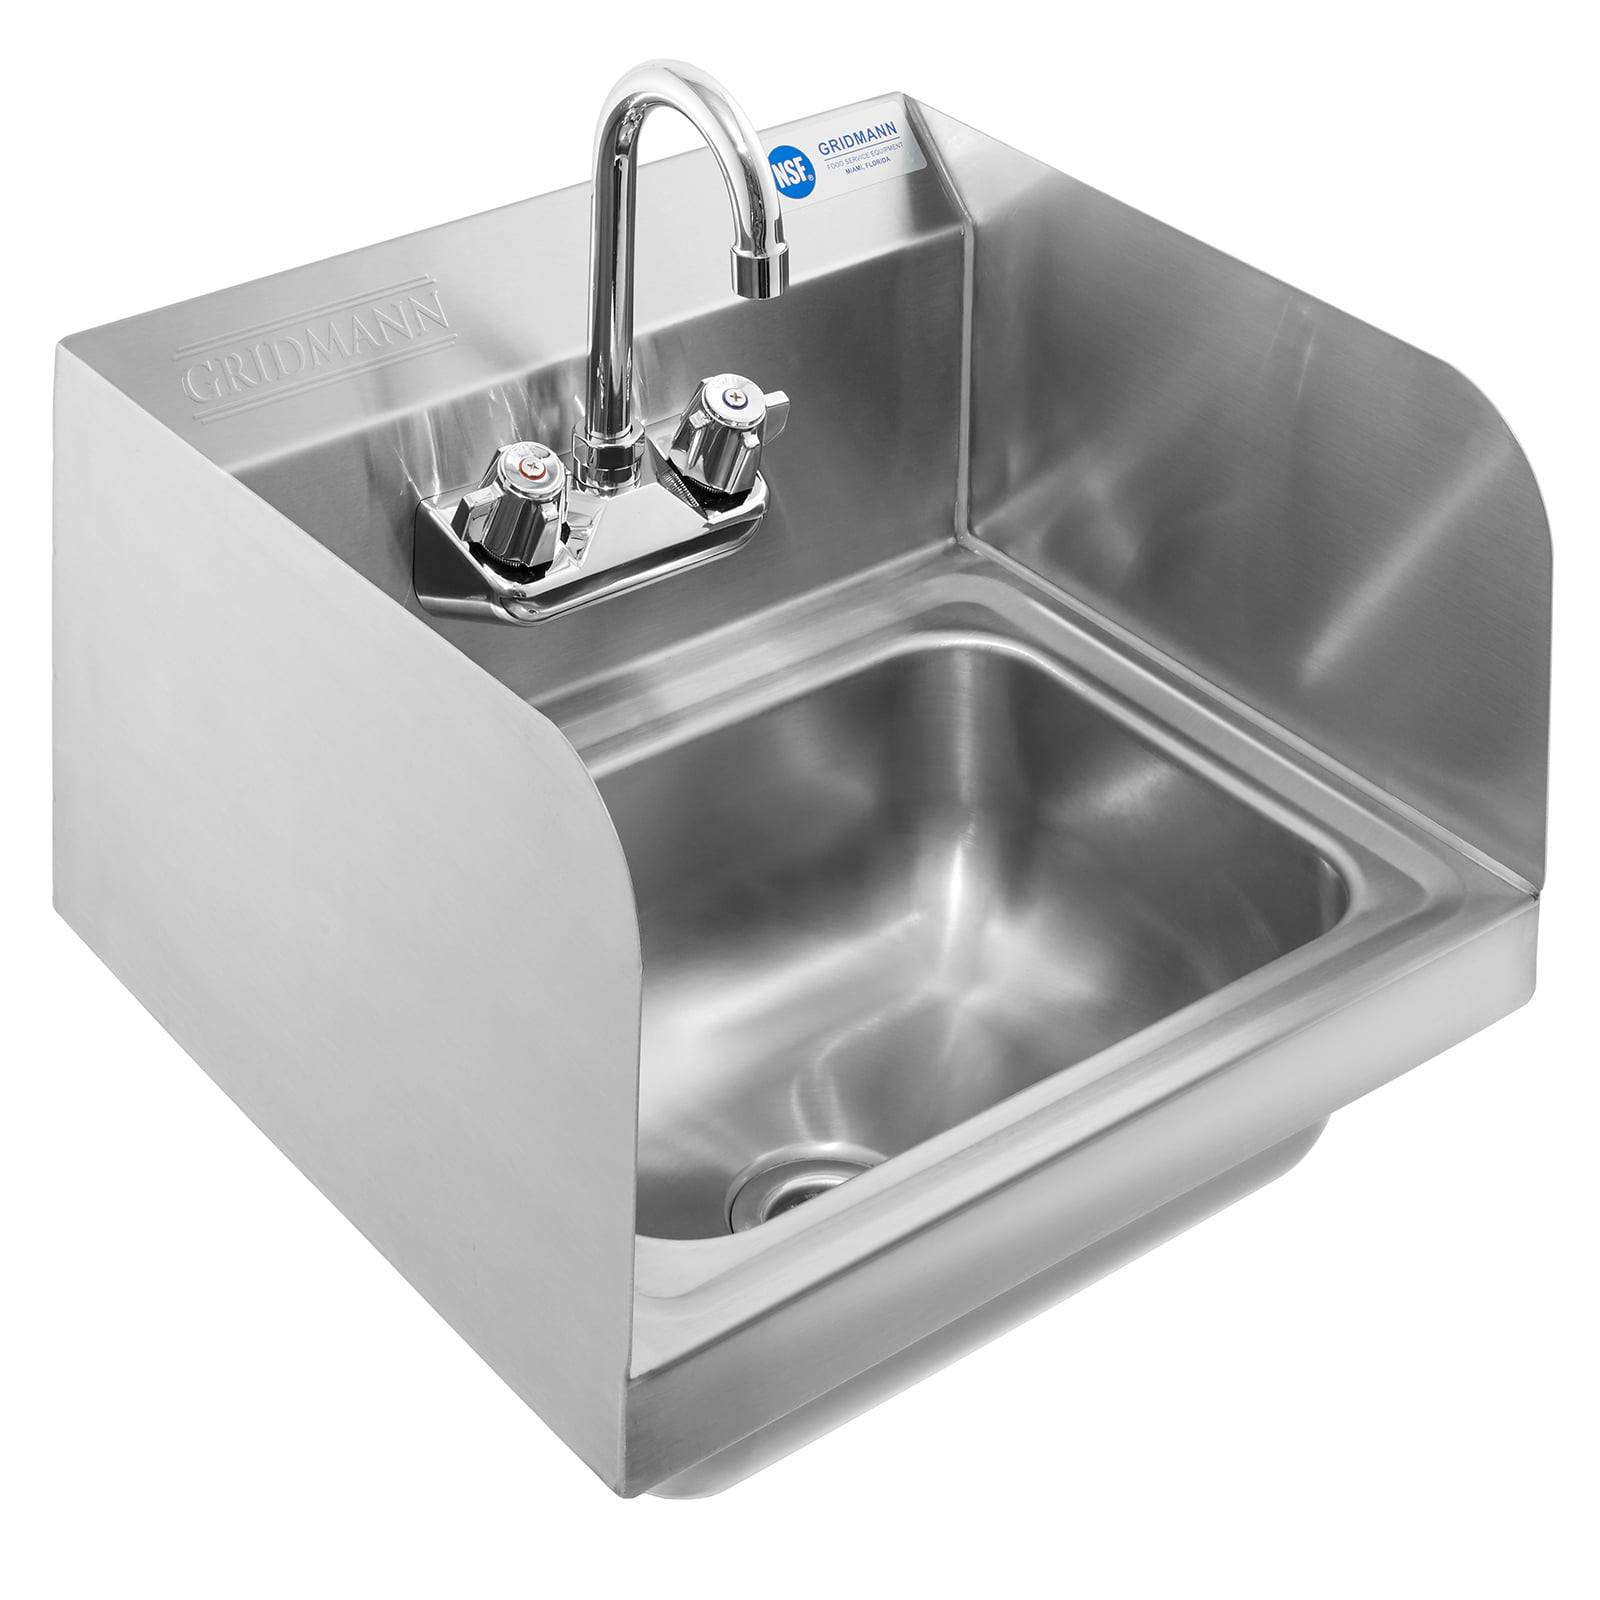 Gridmann Commercial Nsf Stainless Steel Sink With Faucet Sidesplashes Wall Mount Hand Washing Basin Walmart Com Walmart Com